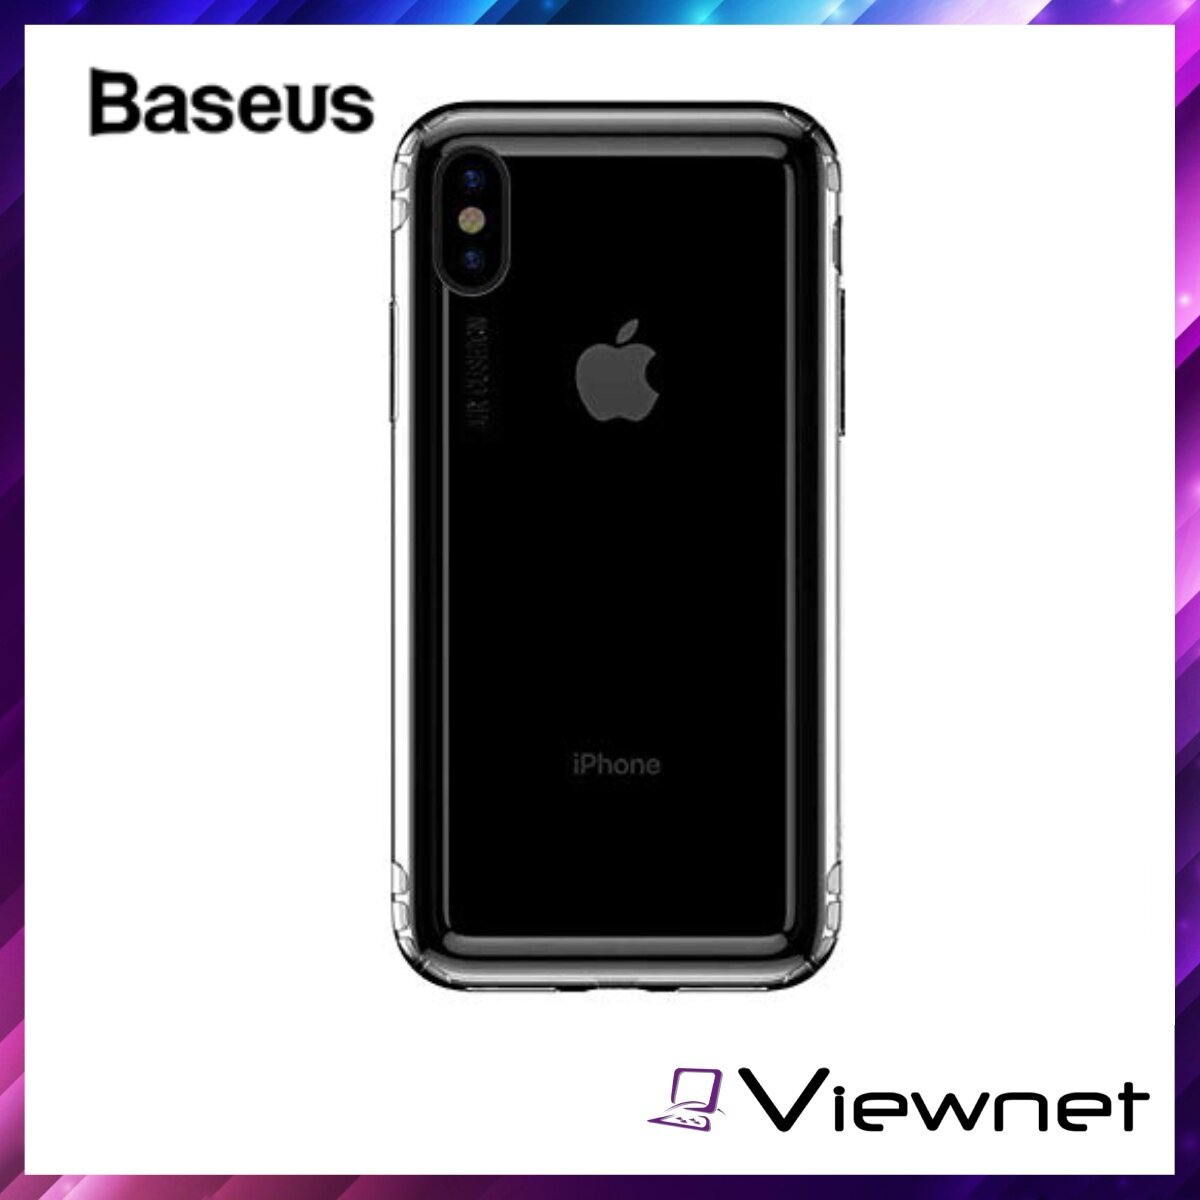 Baseus Safety Airbags Case For iPhone XS Max (ARAPIPH65-SF02), Drop Resistance, Anti-knock Design, Dirt-Resistant, Transparent